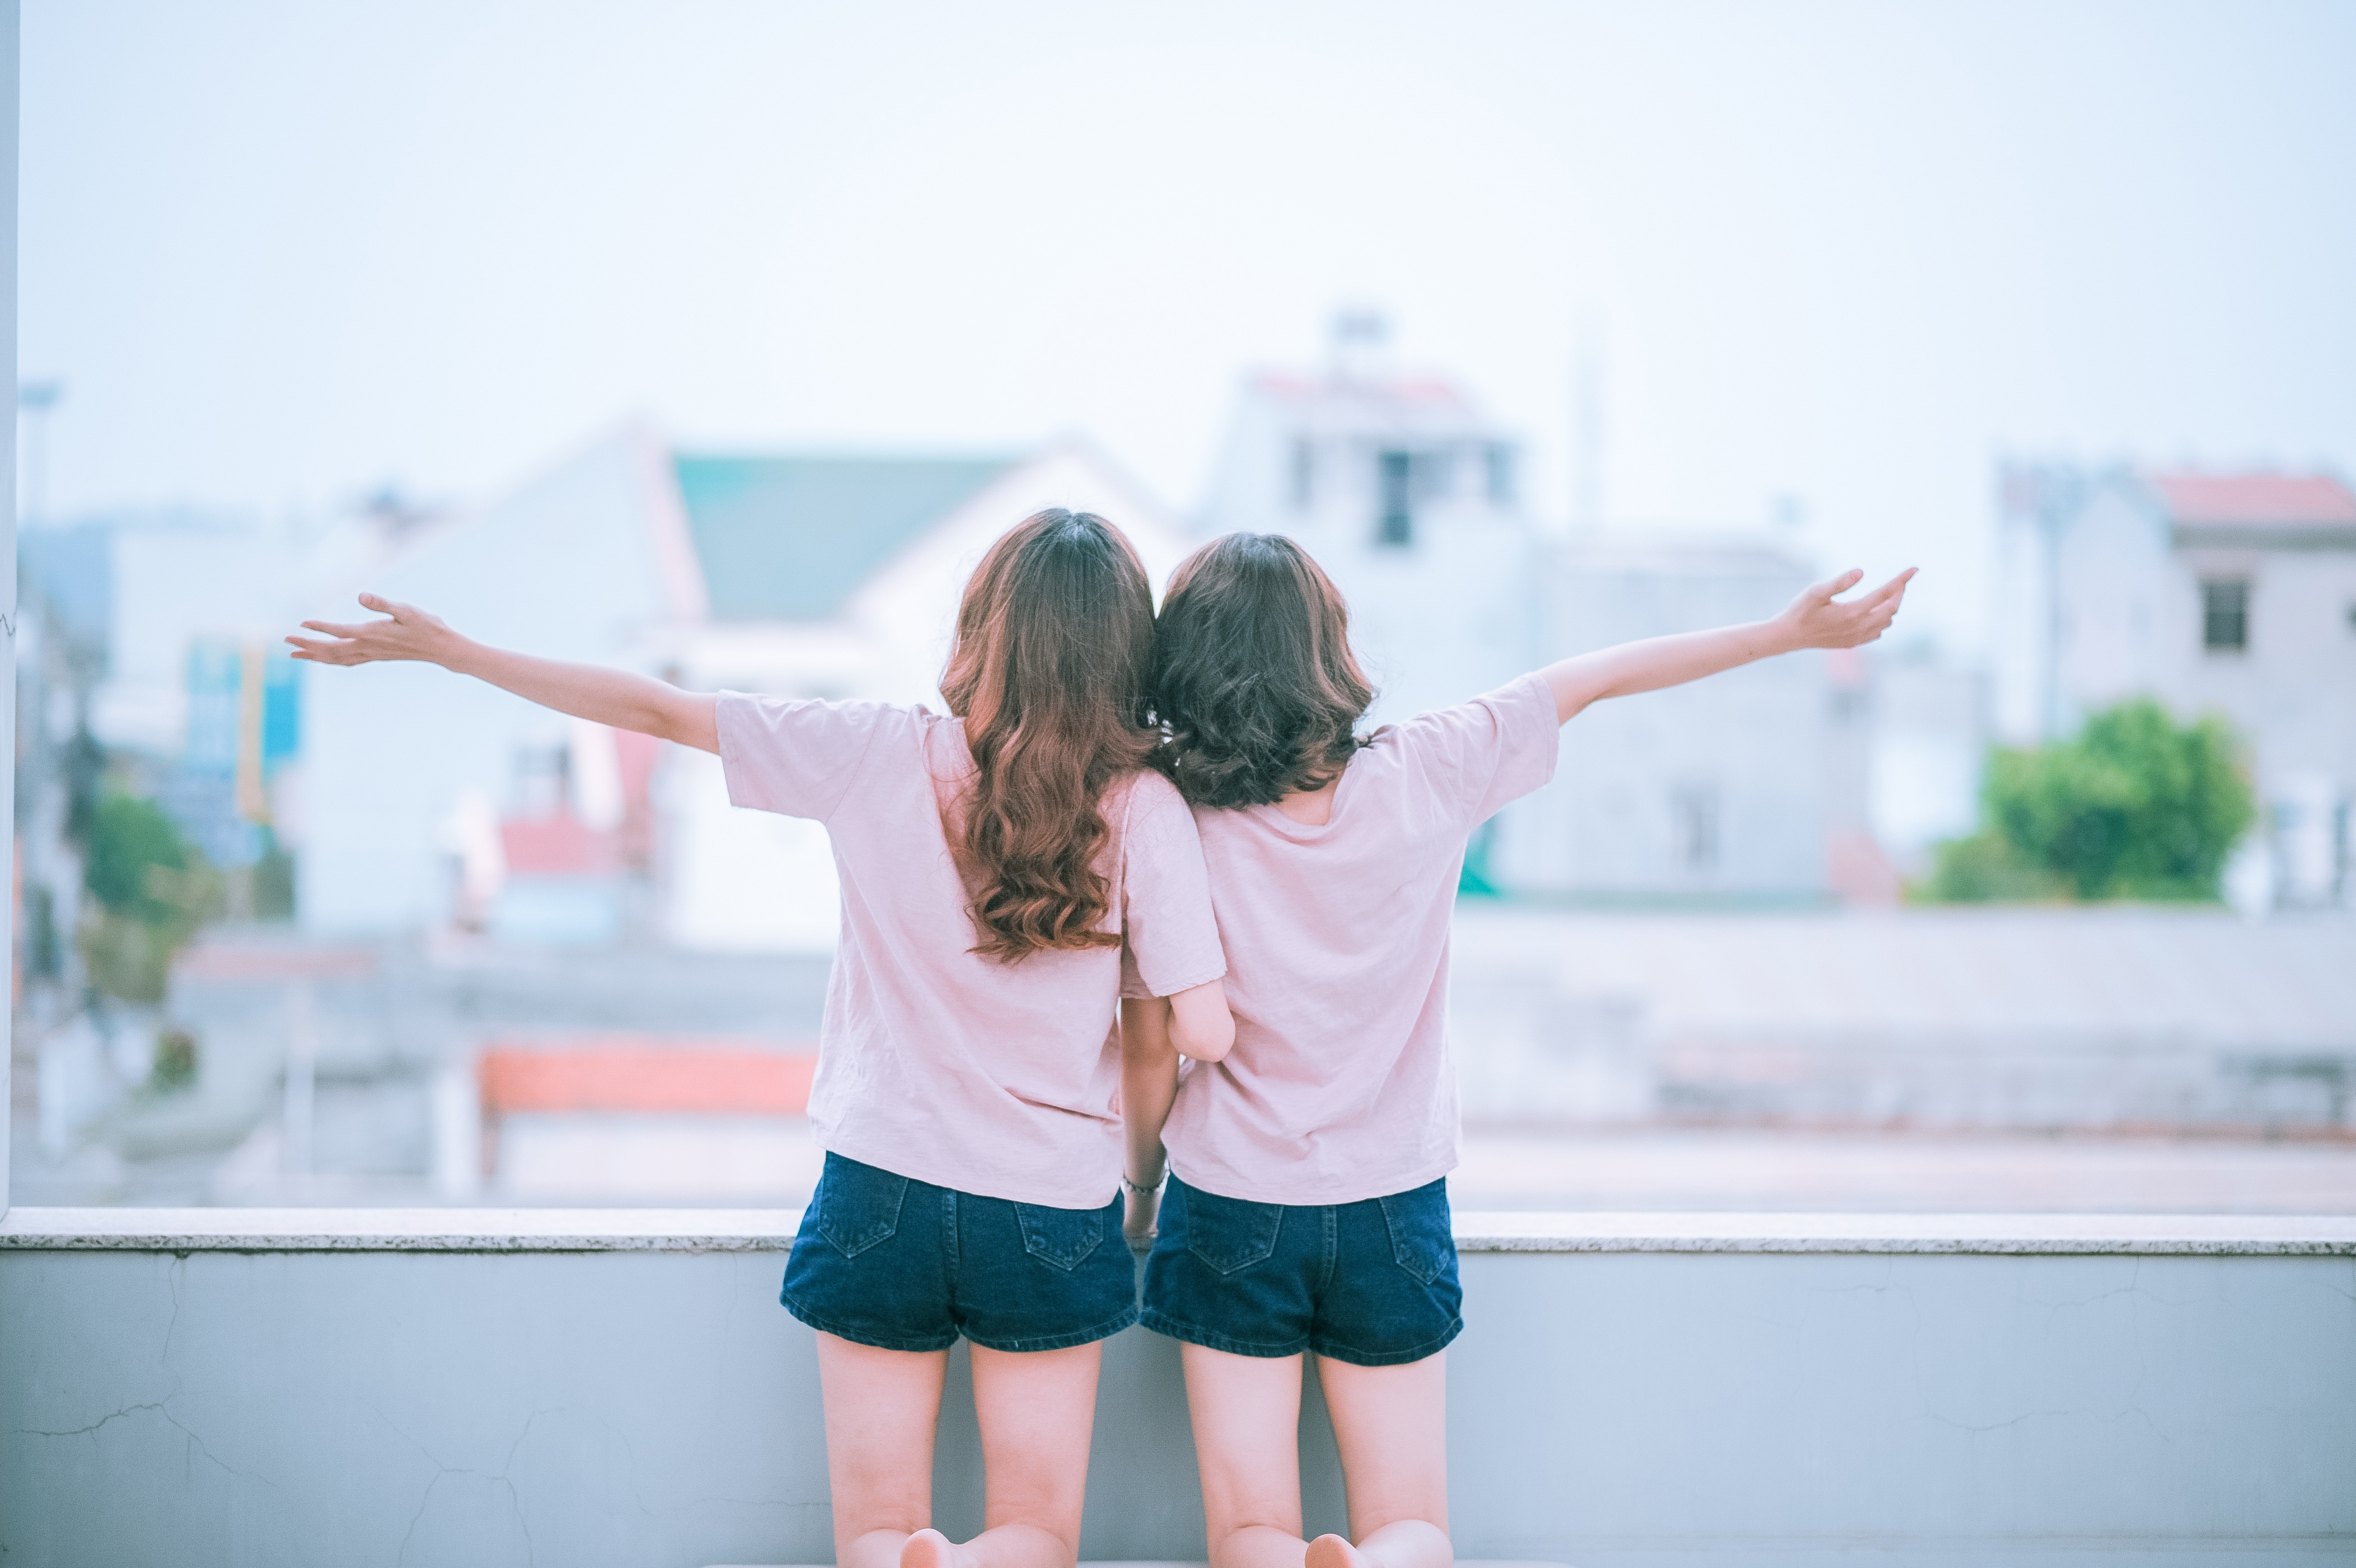 friend, together, girl, relationship, happy,